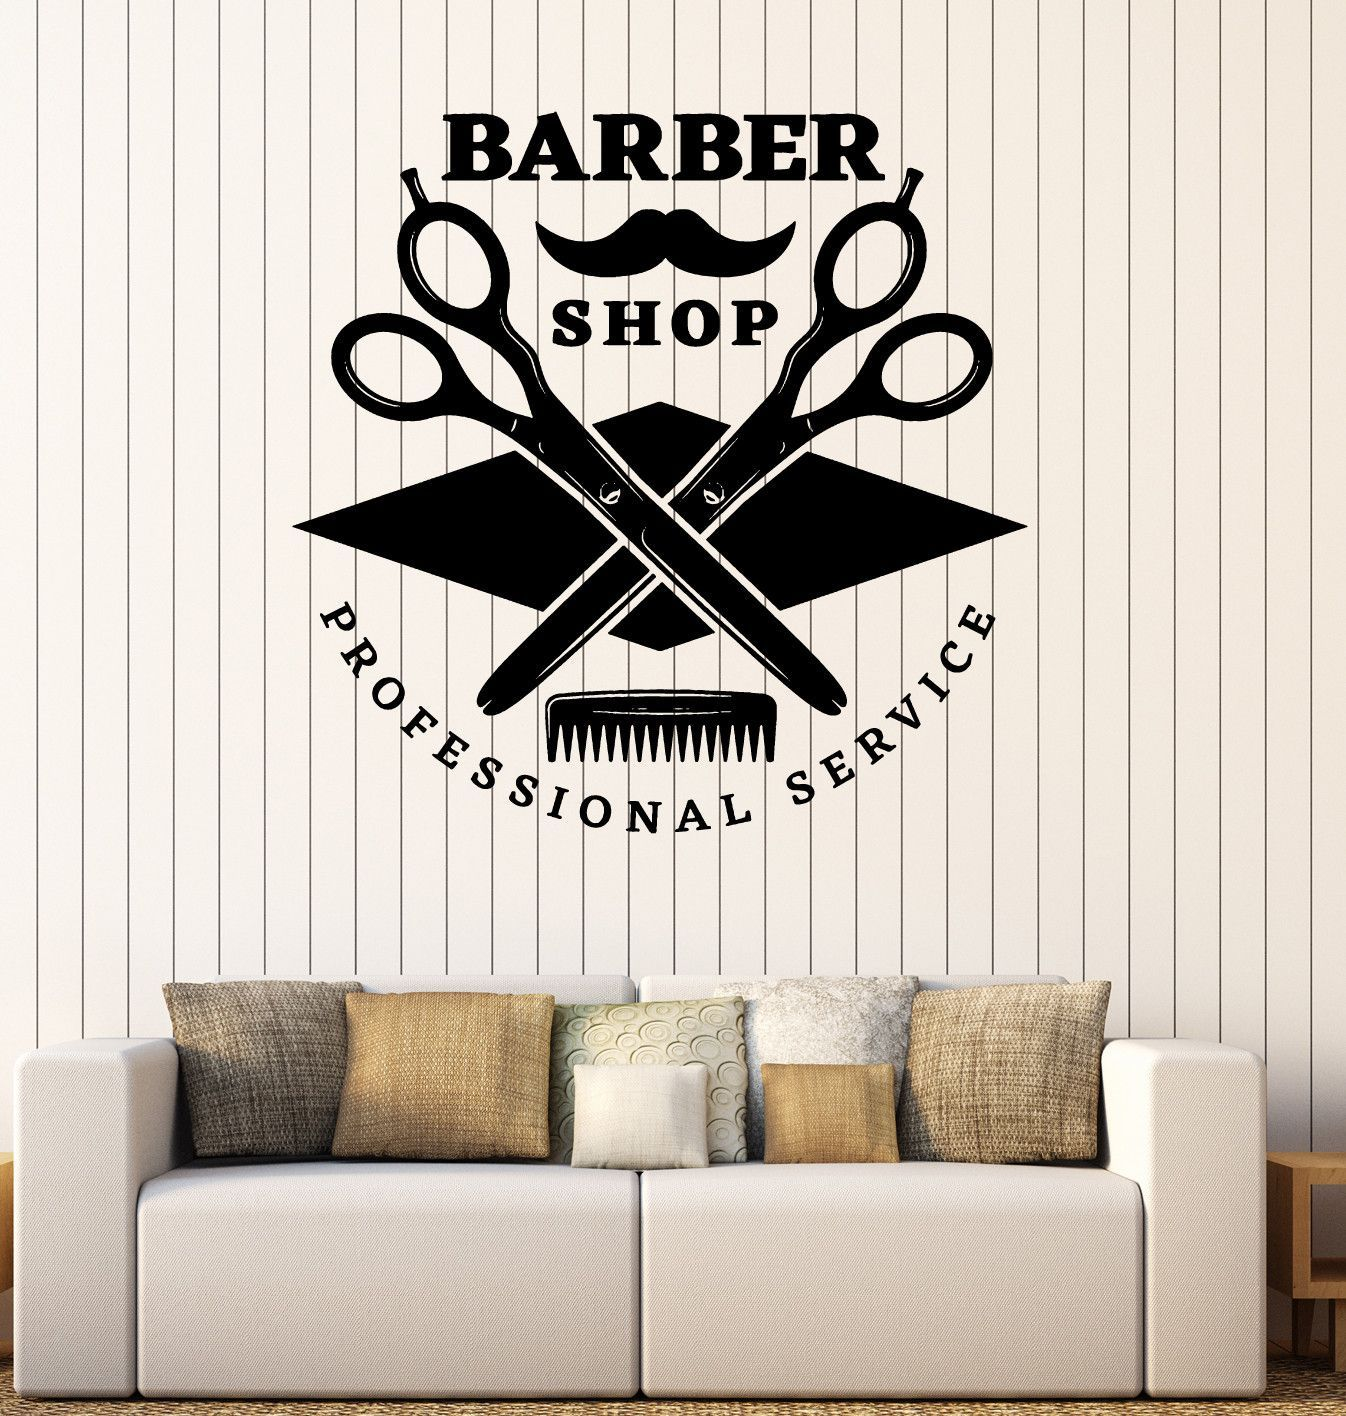 Barber shop pole distressed wall decal vintage style wall decor ebay - Wall Vinyl Decal Barber Shop Professional Service Hair Stickers Decor Z4813